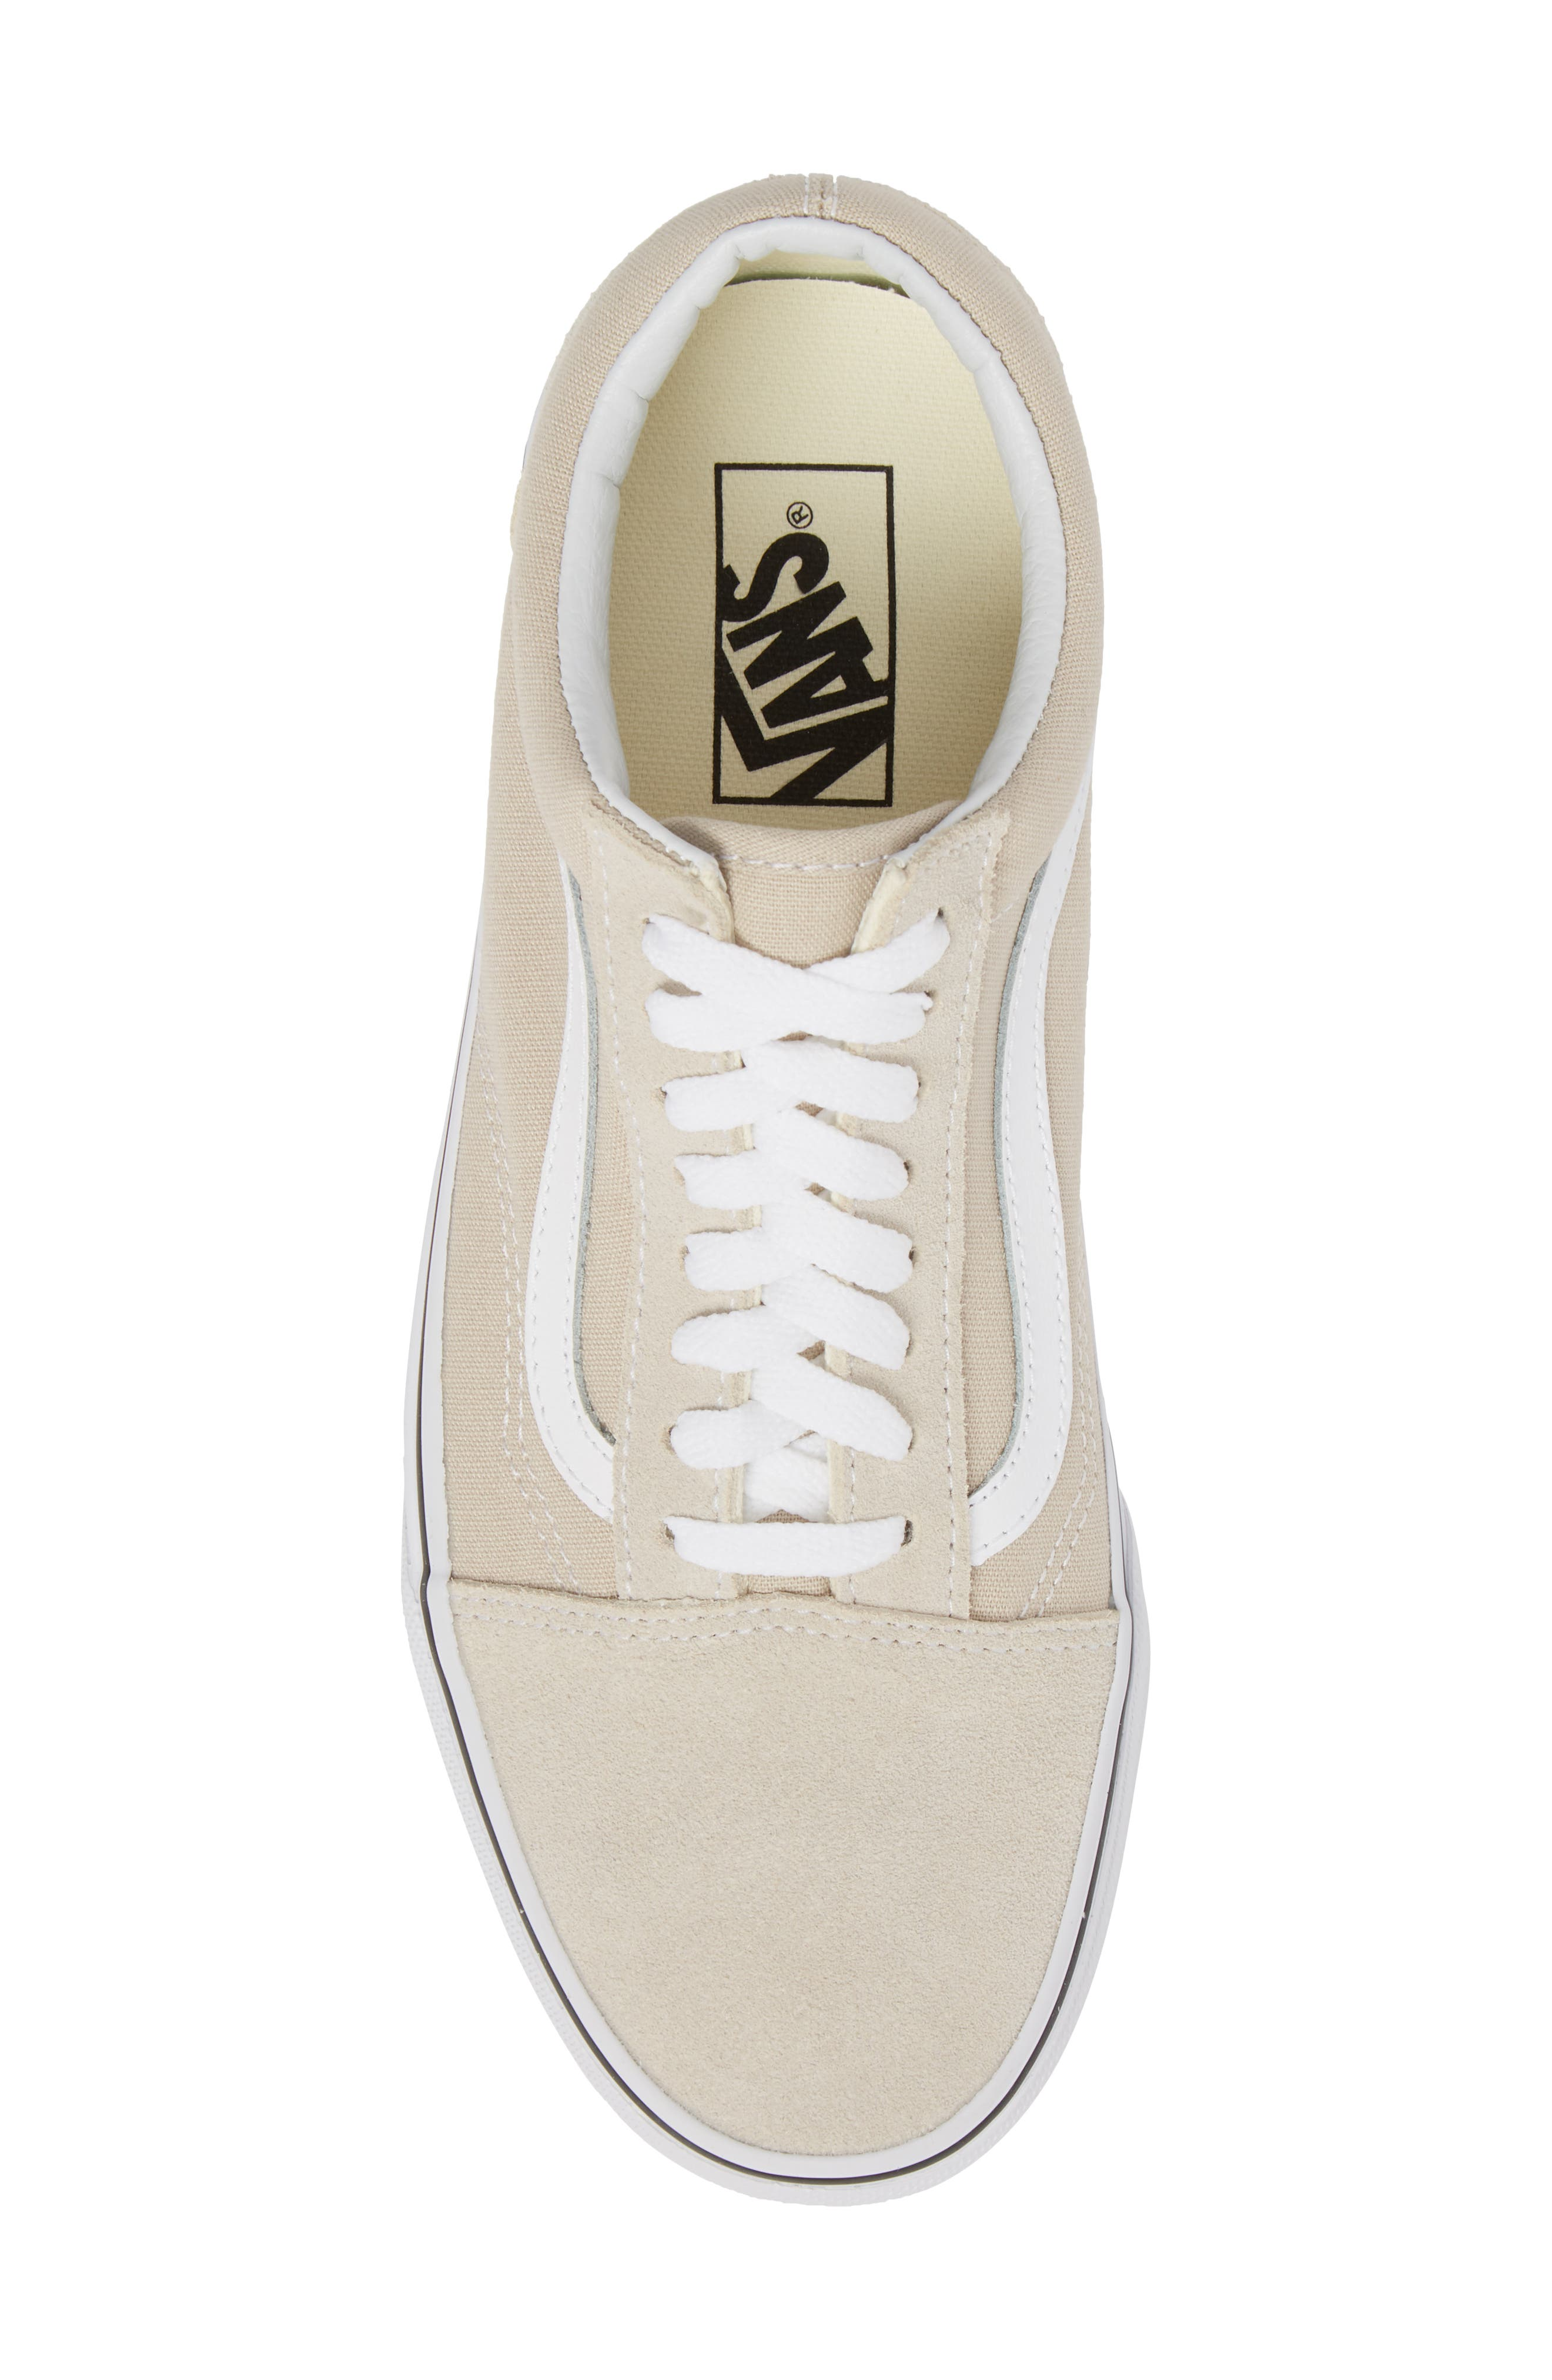 Old Skool Low Top Sneaker,                             Alternate thumbnail 5, color,                             Silver Lining/ White Leather